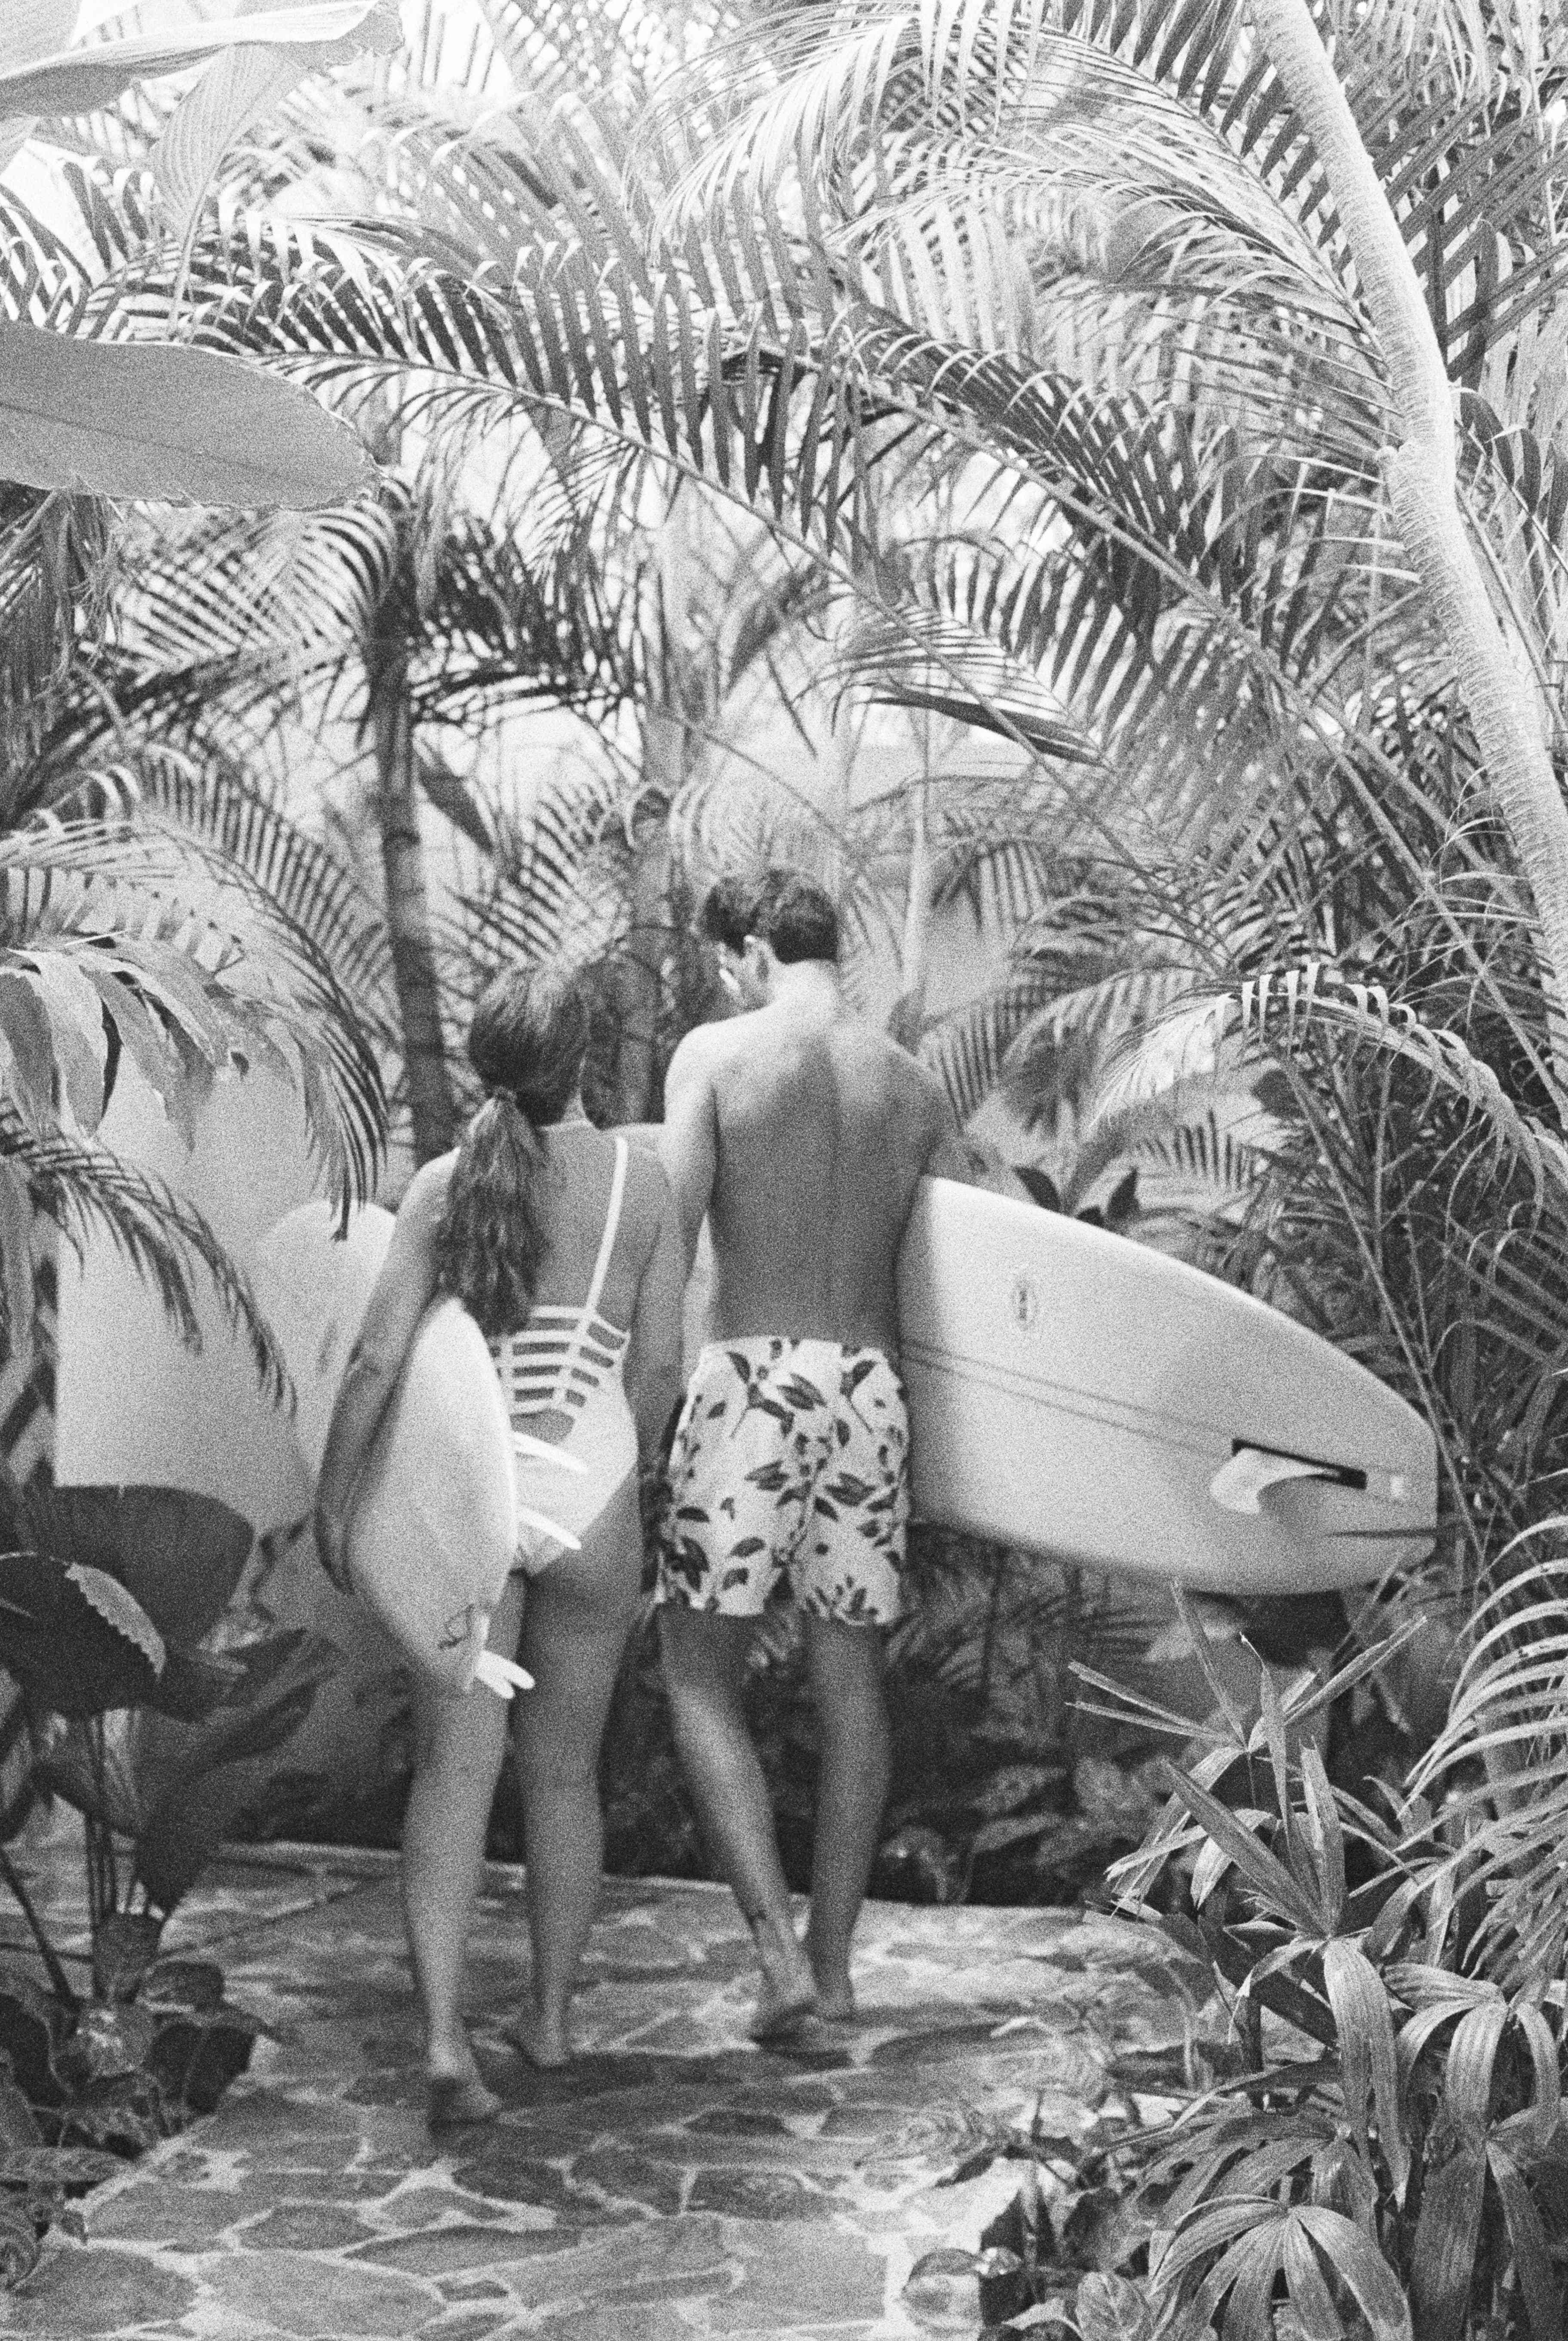 couple holding surfboards